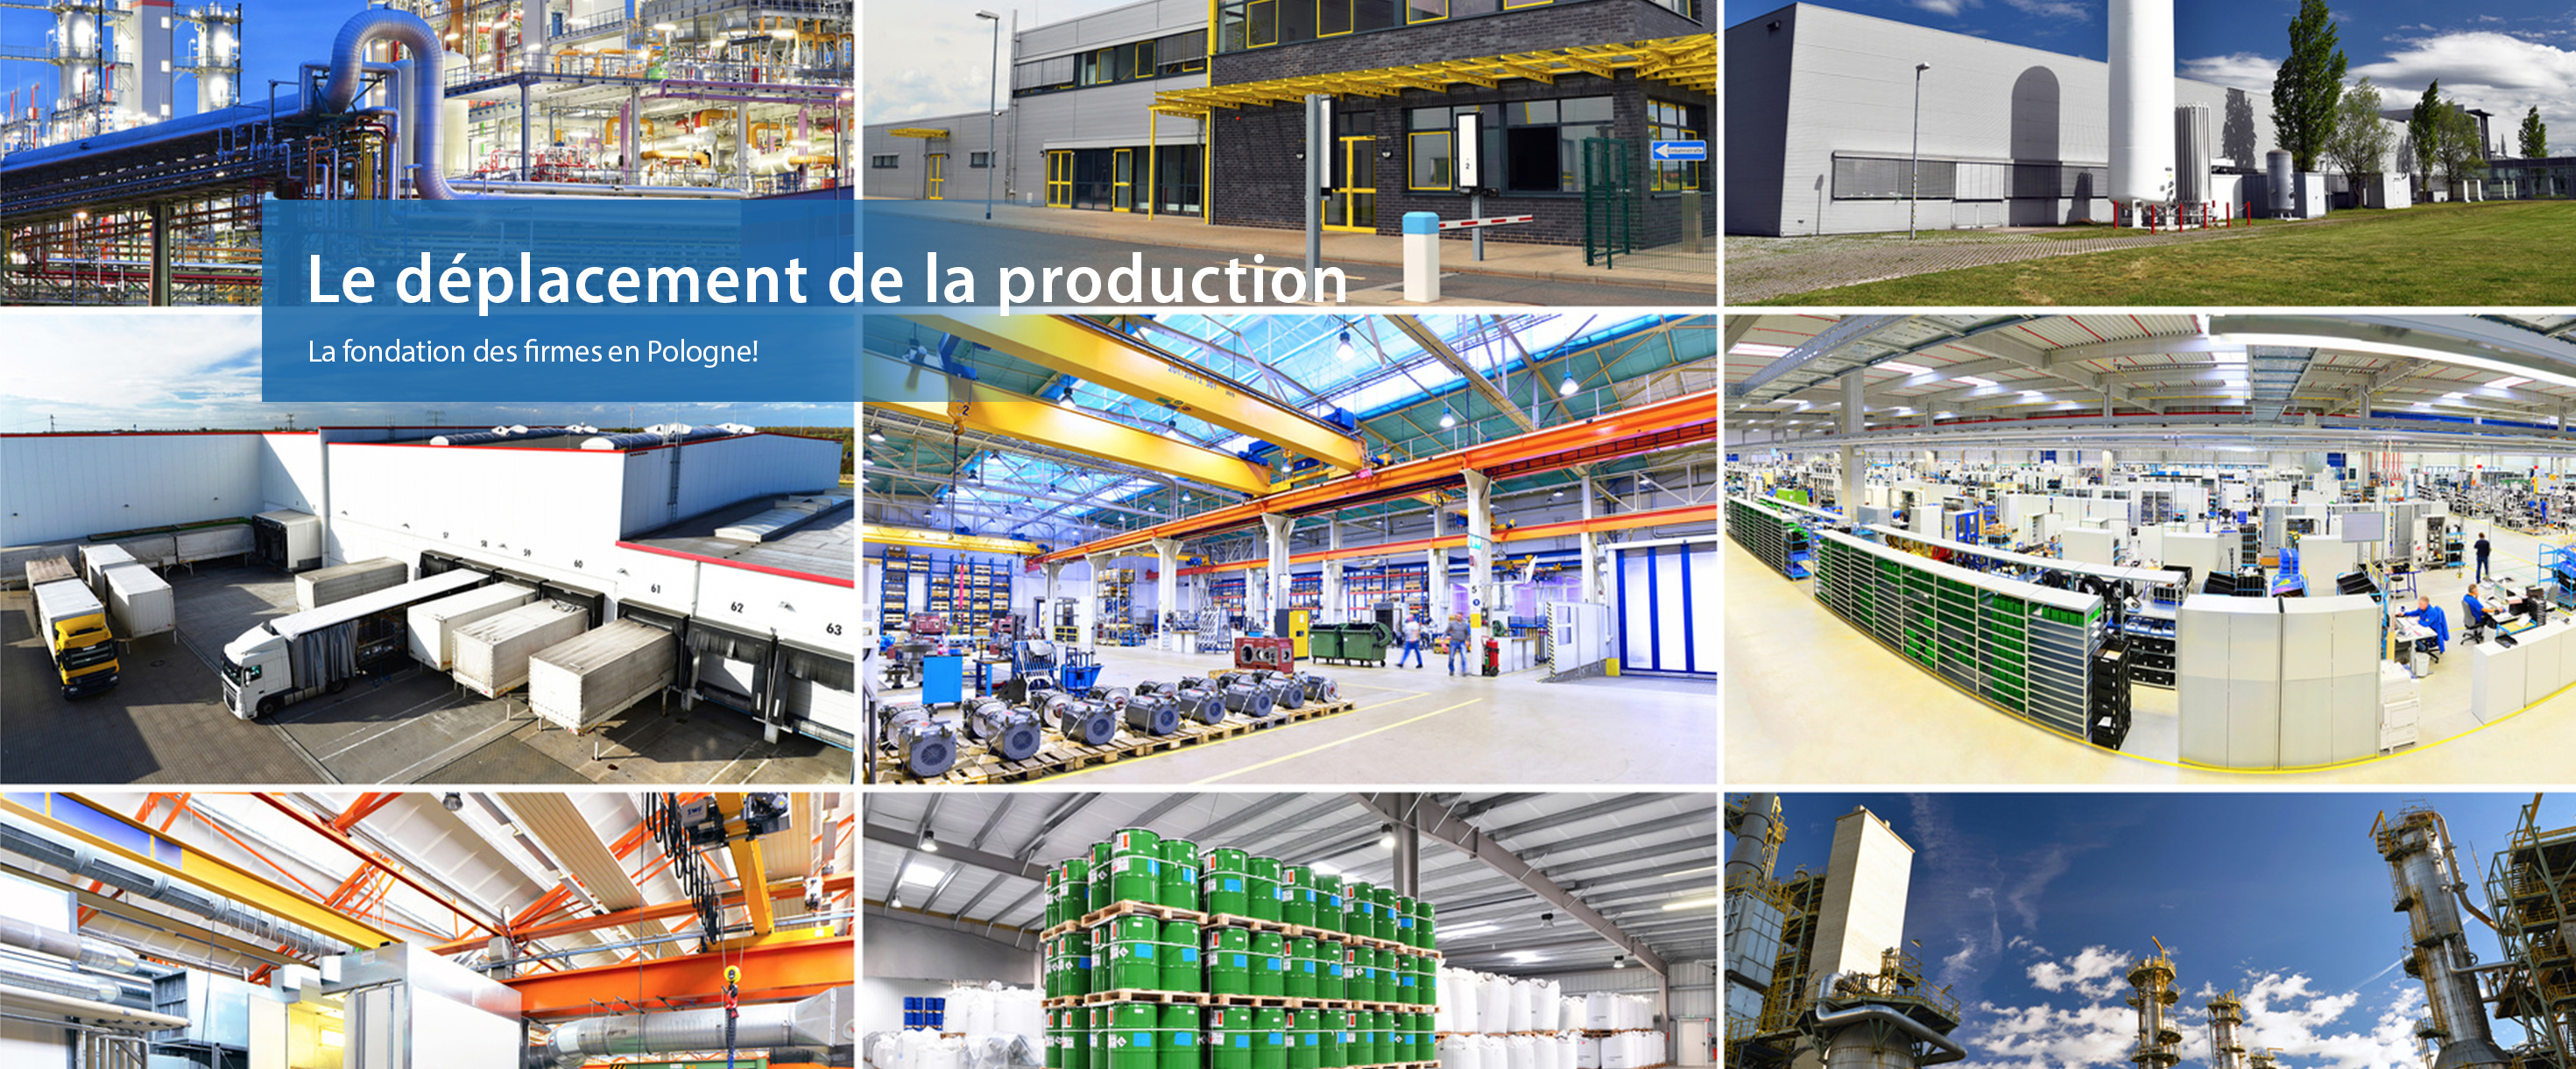 Le déplacement de la production